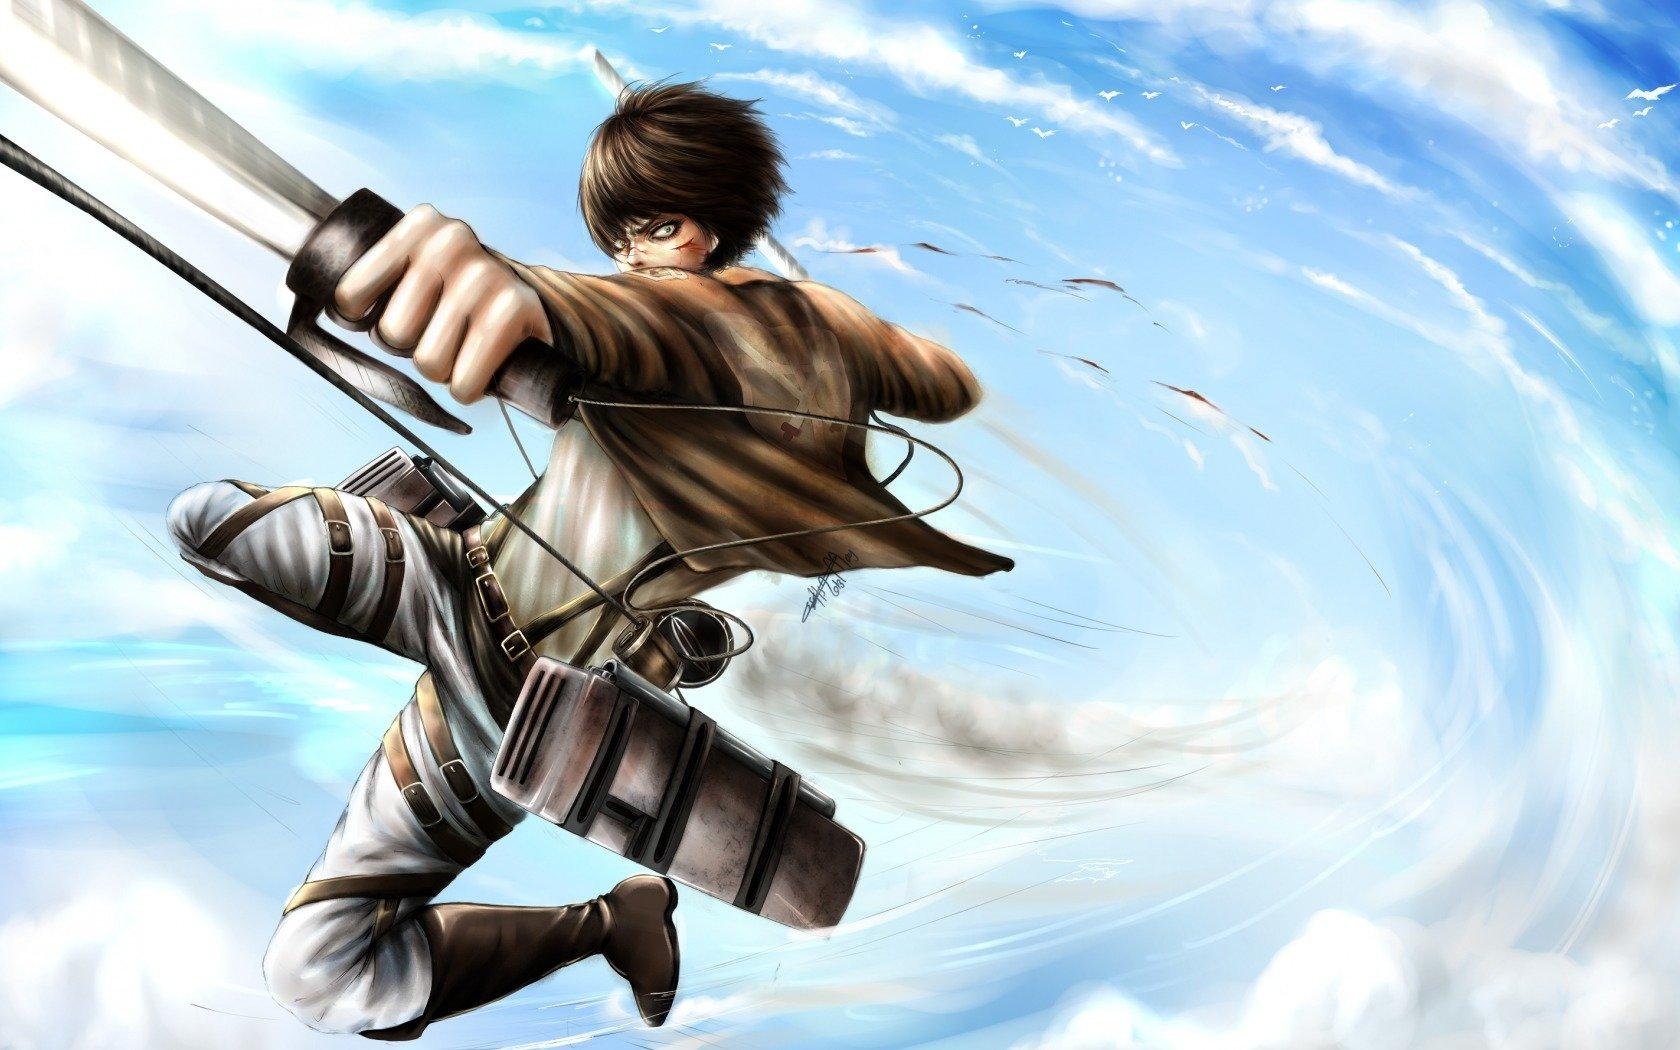 Eren Yeager wallpapers 1680x1050 desktop backgrounds